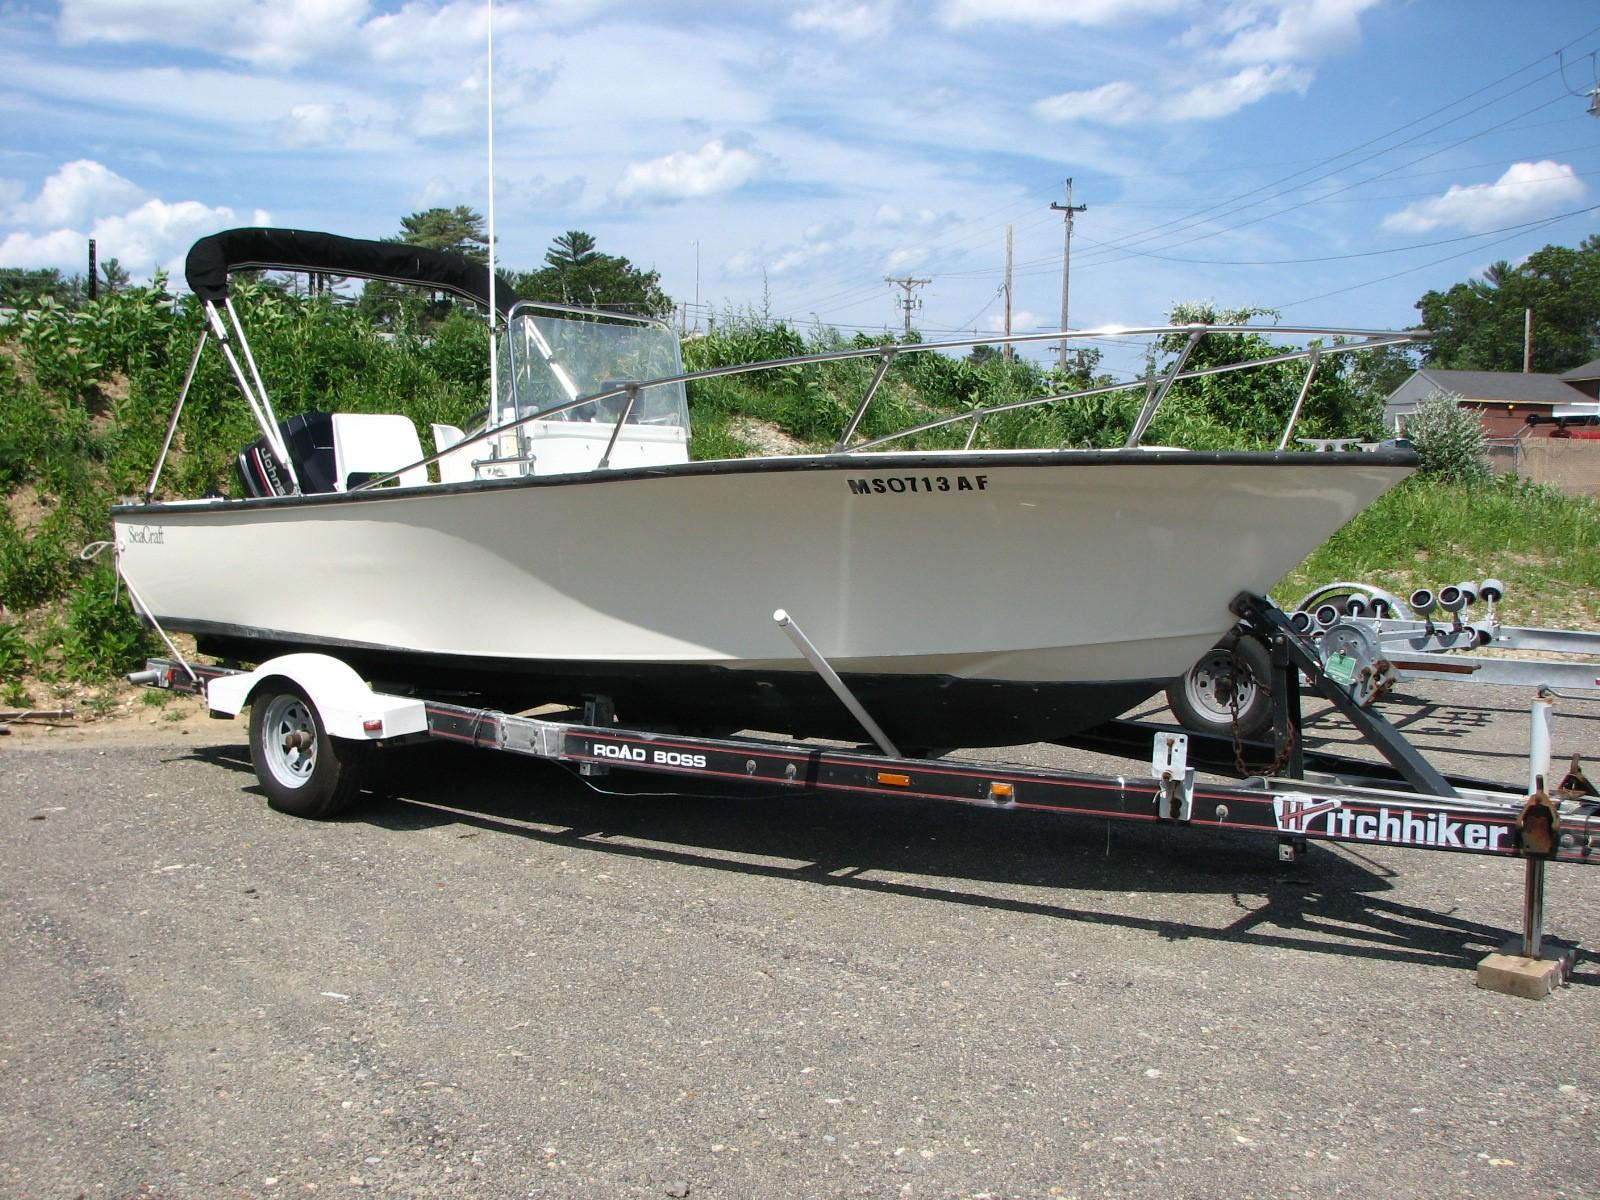 1973 Seacraft 20 Classic Potter Hull Power Boat For Sale